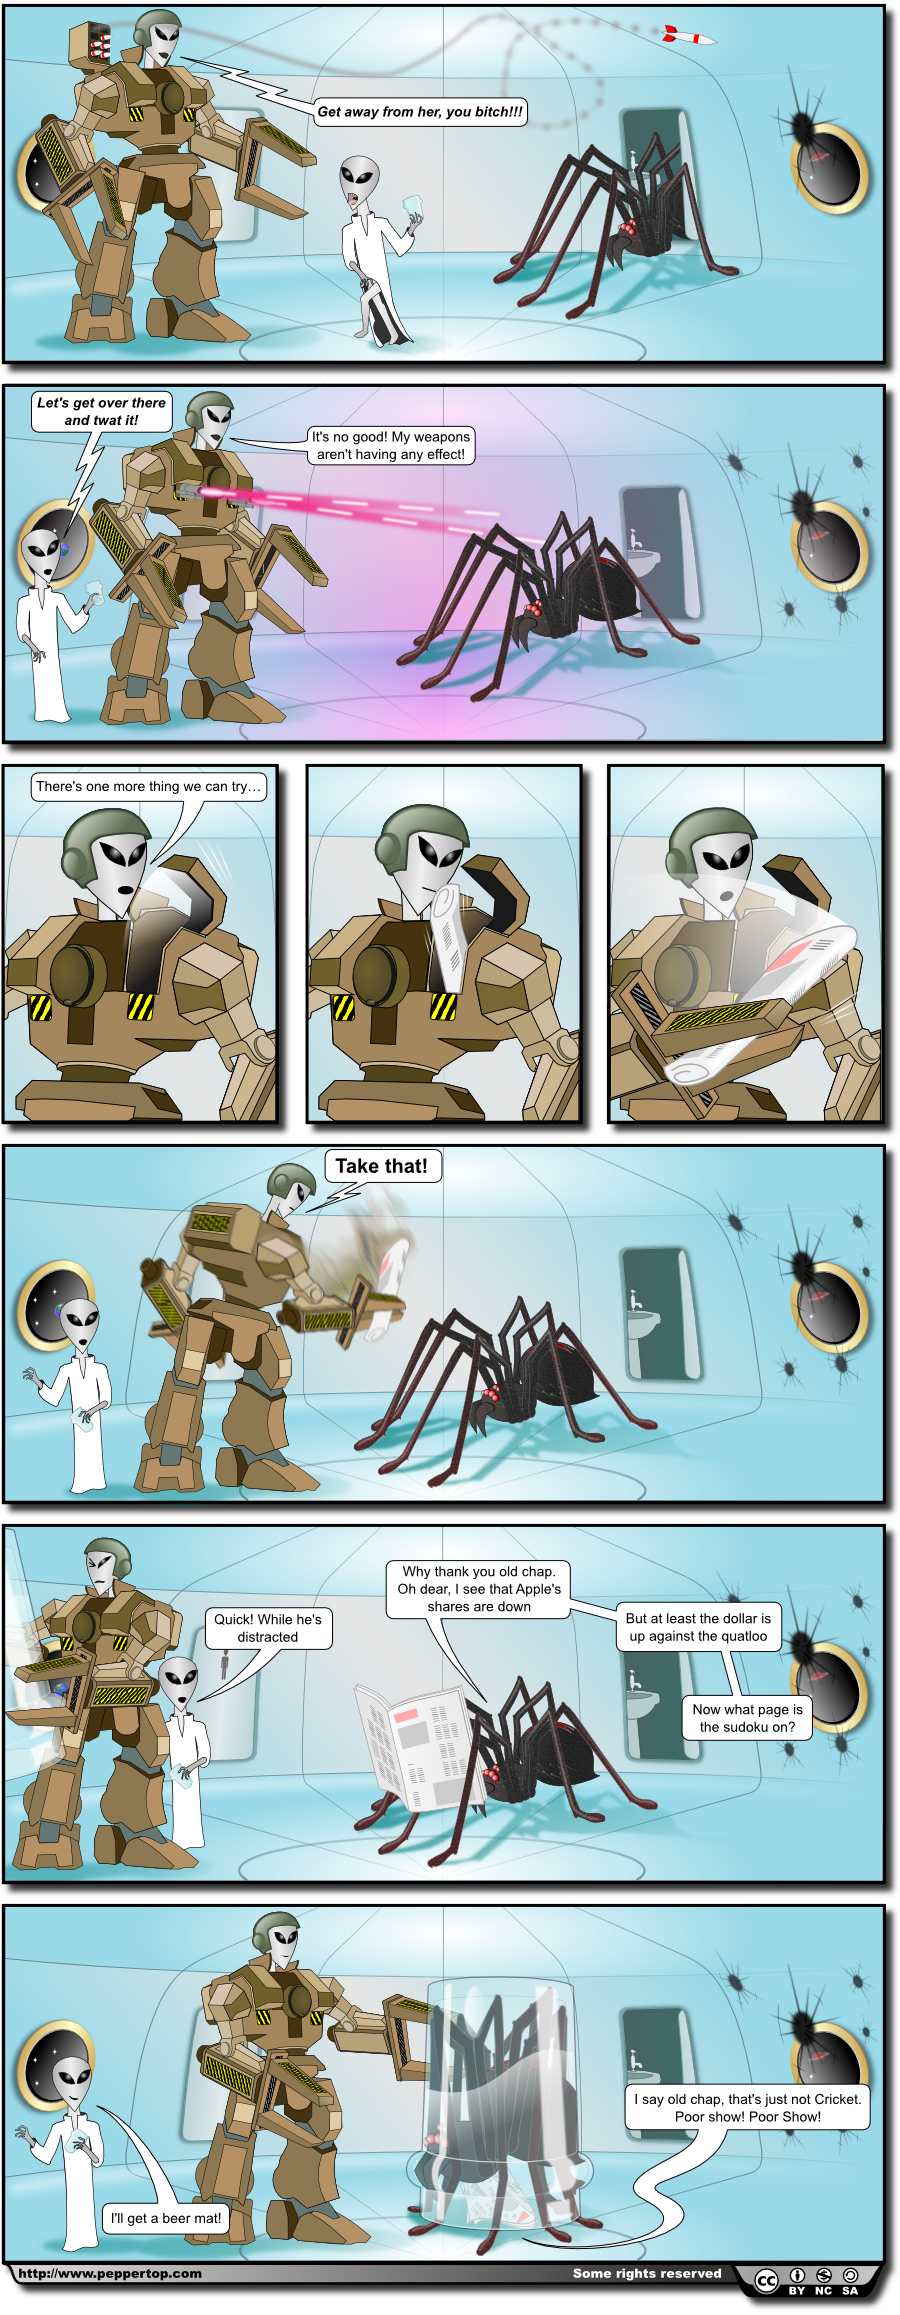 The Spider's From Mars